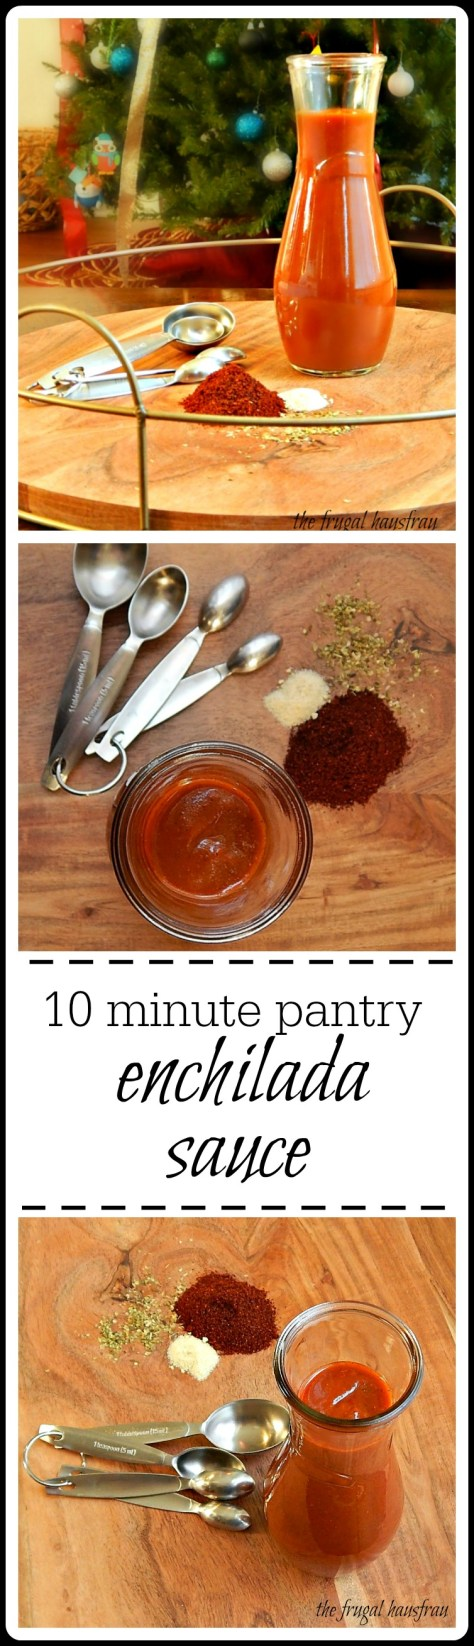 Under 10 minutes with ingredients you probably have at home!!